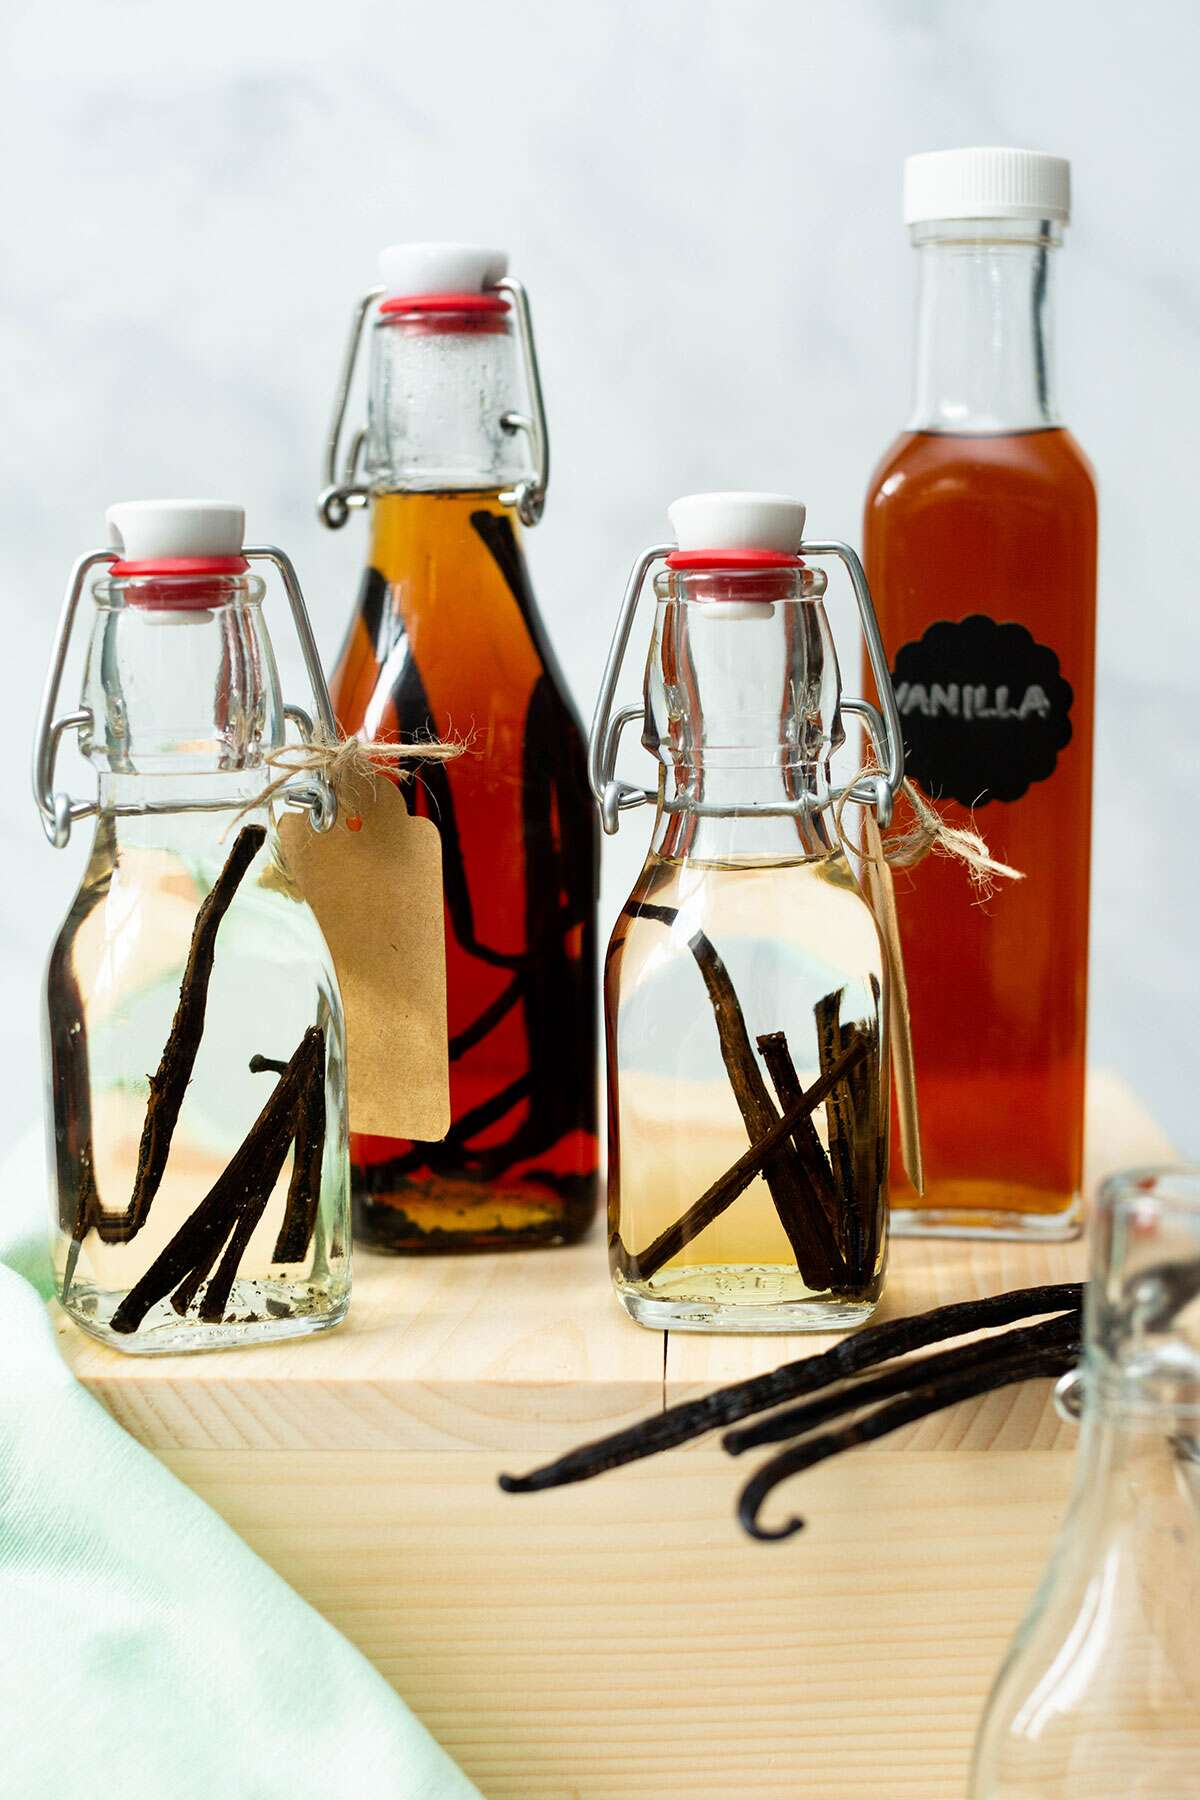 Small and large bottles of vanilla extract that have been aged for varying amounts of time, as well as a few vanilla beans.